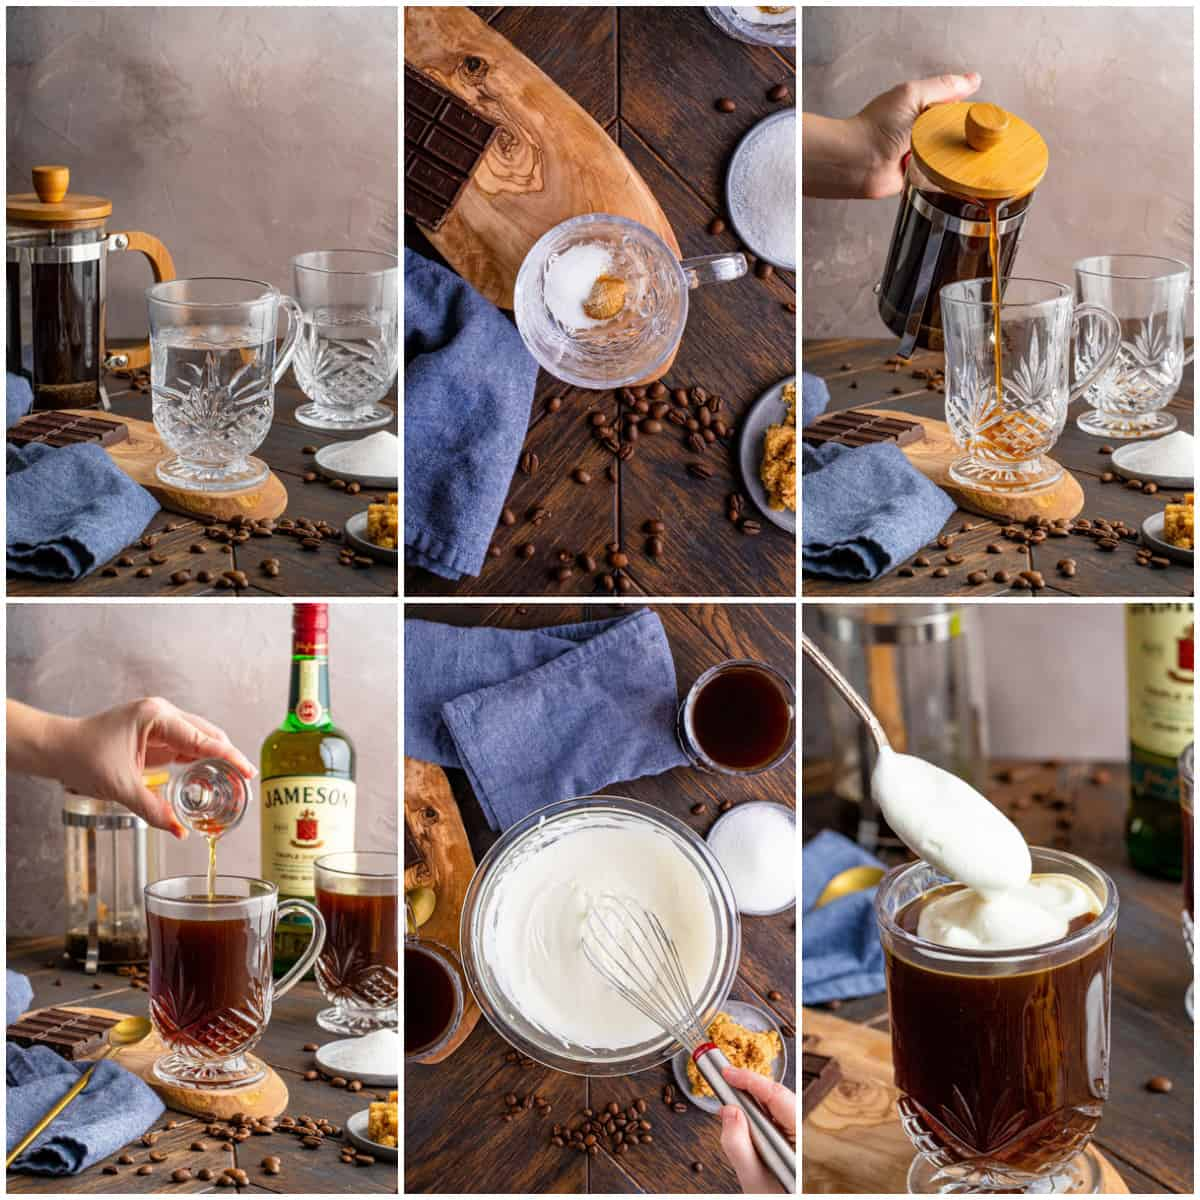 Step by step photos of how to make an Irish Coffee Recipe